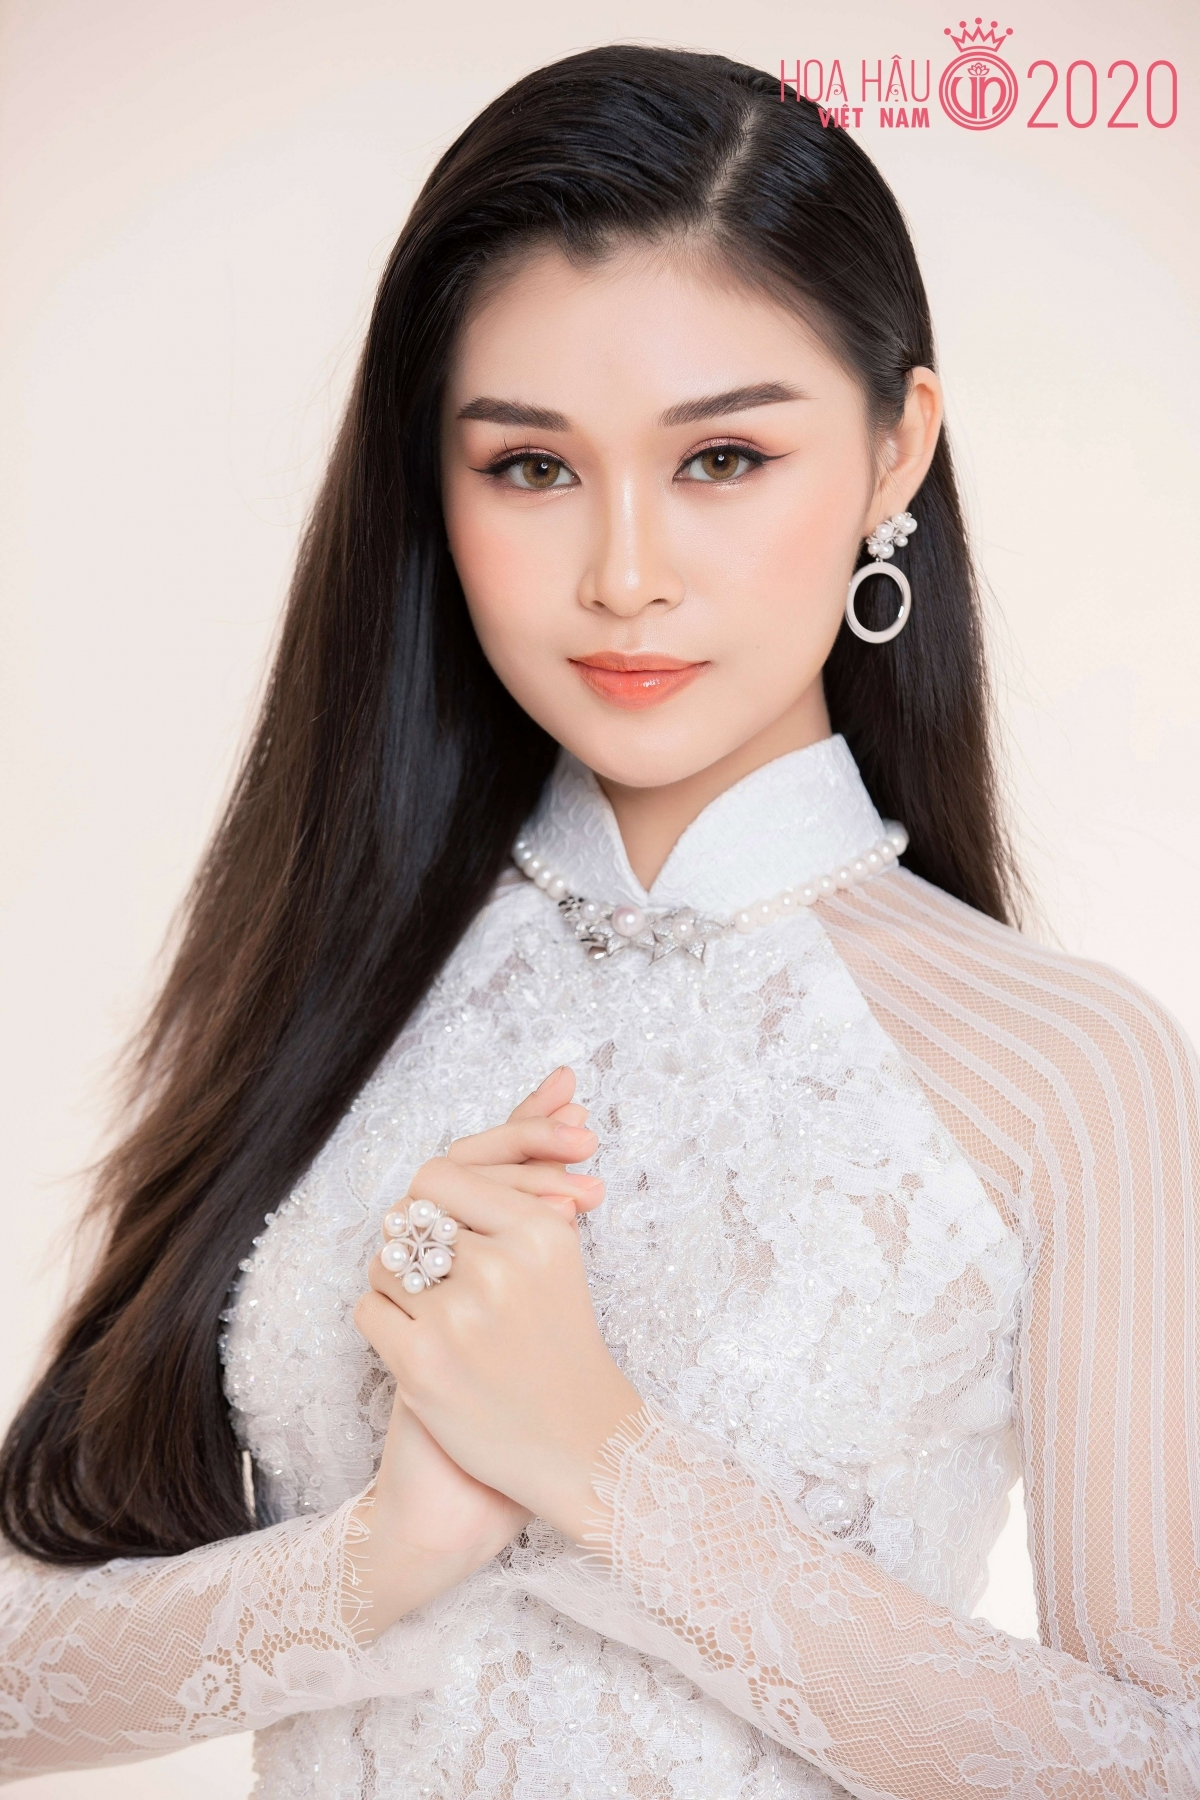 Contestant Le Thi Phuong Doan